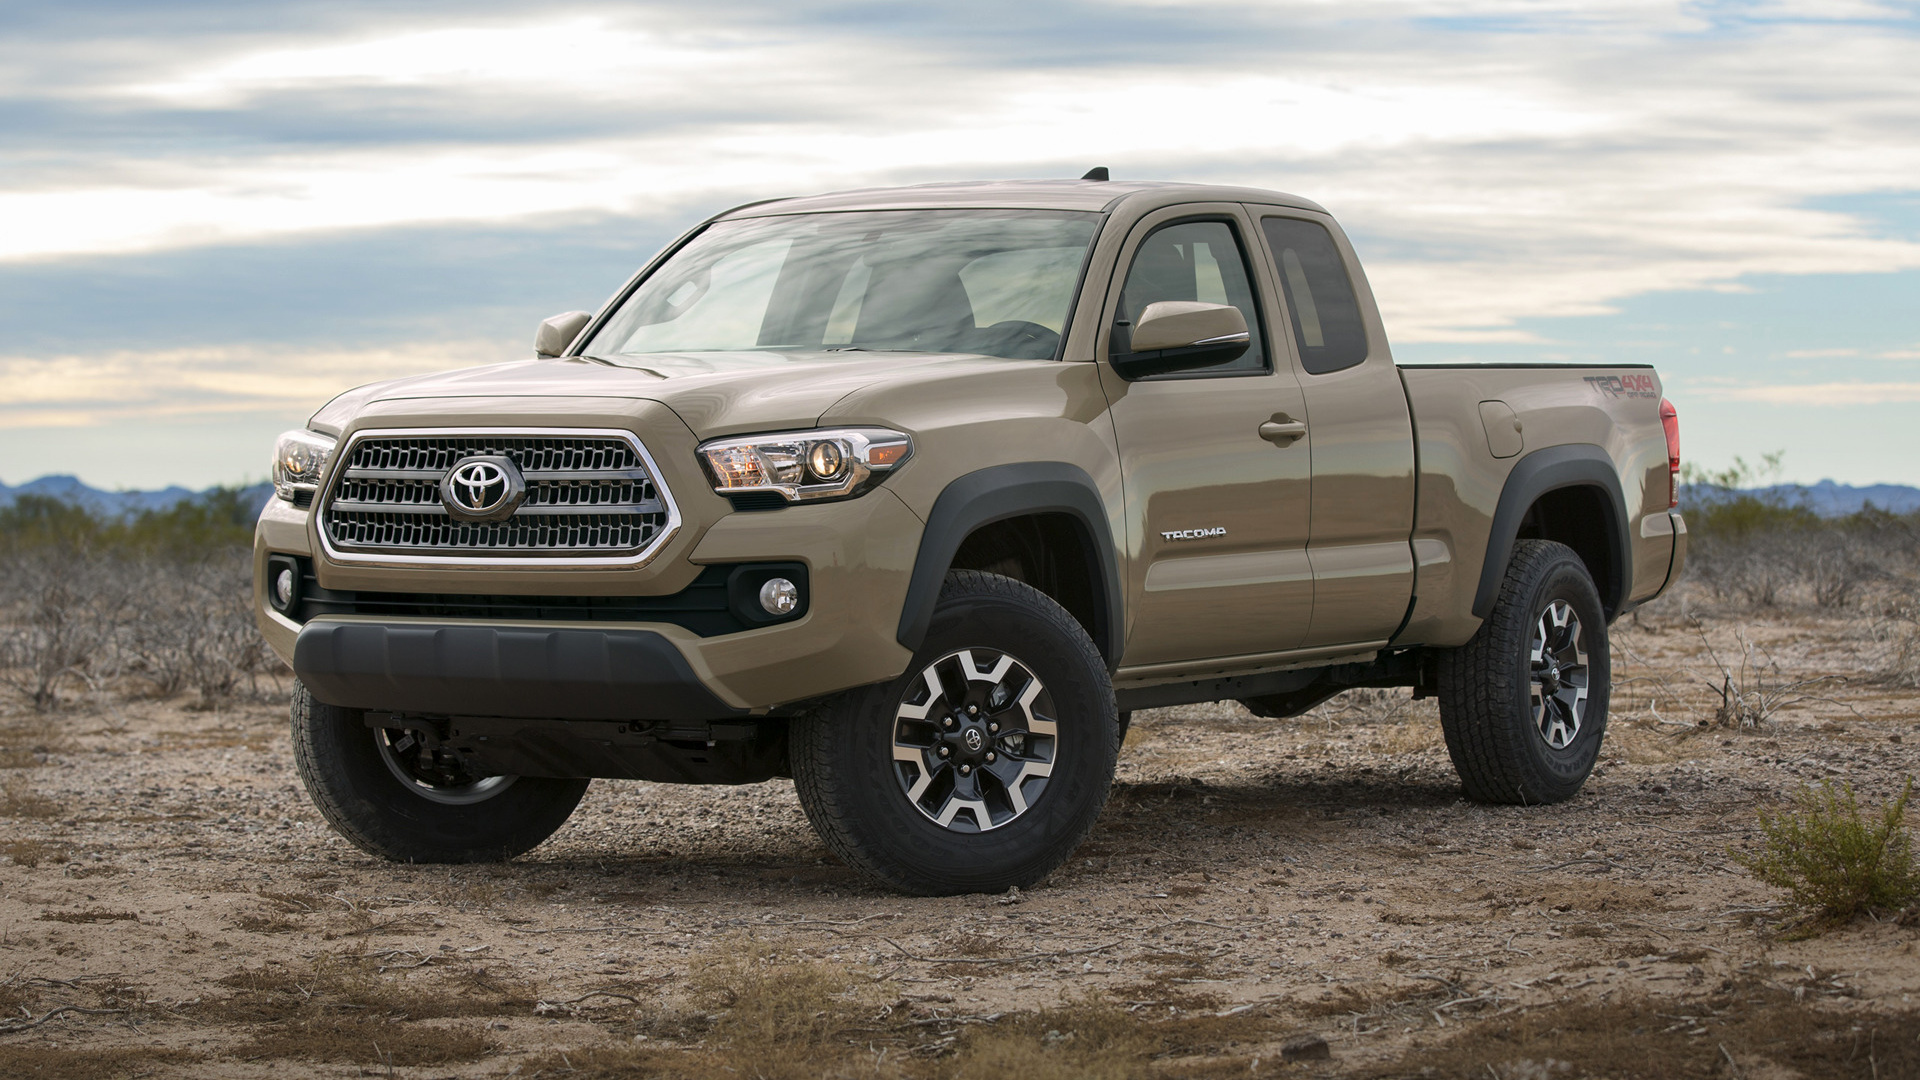 Toyota Tacoma Trd Off Road Access Cab 2016 Wallpapers